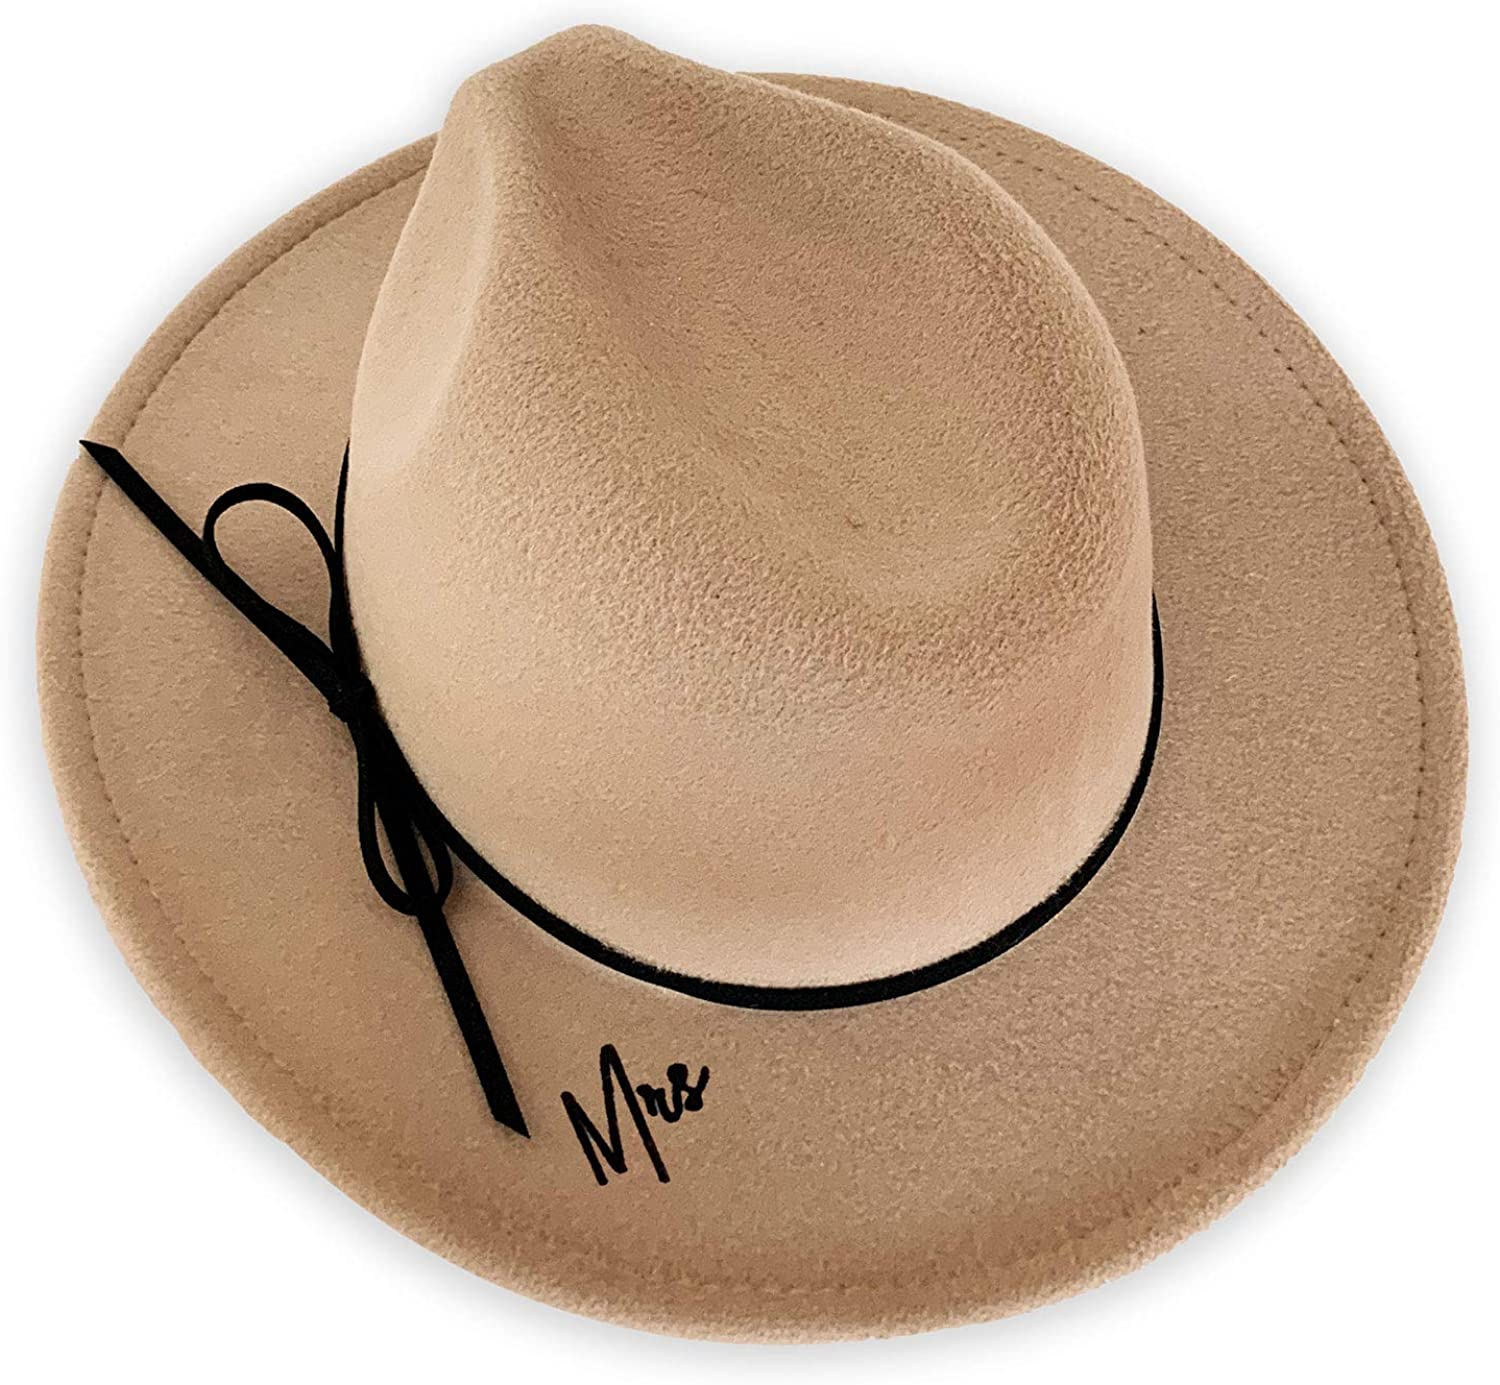 Mrs Fedora Hat Bride Engagement Photo Shoot Prop Tan Camel Fedora with Bow